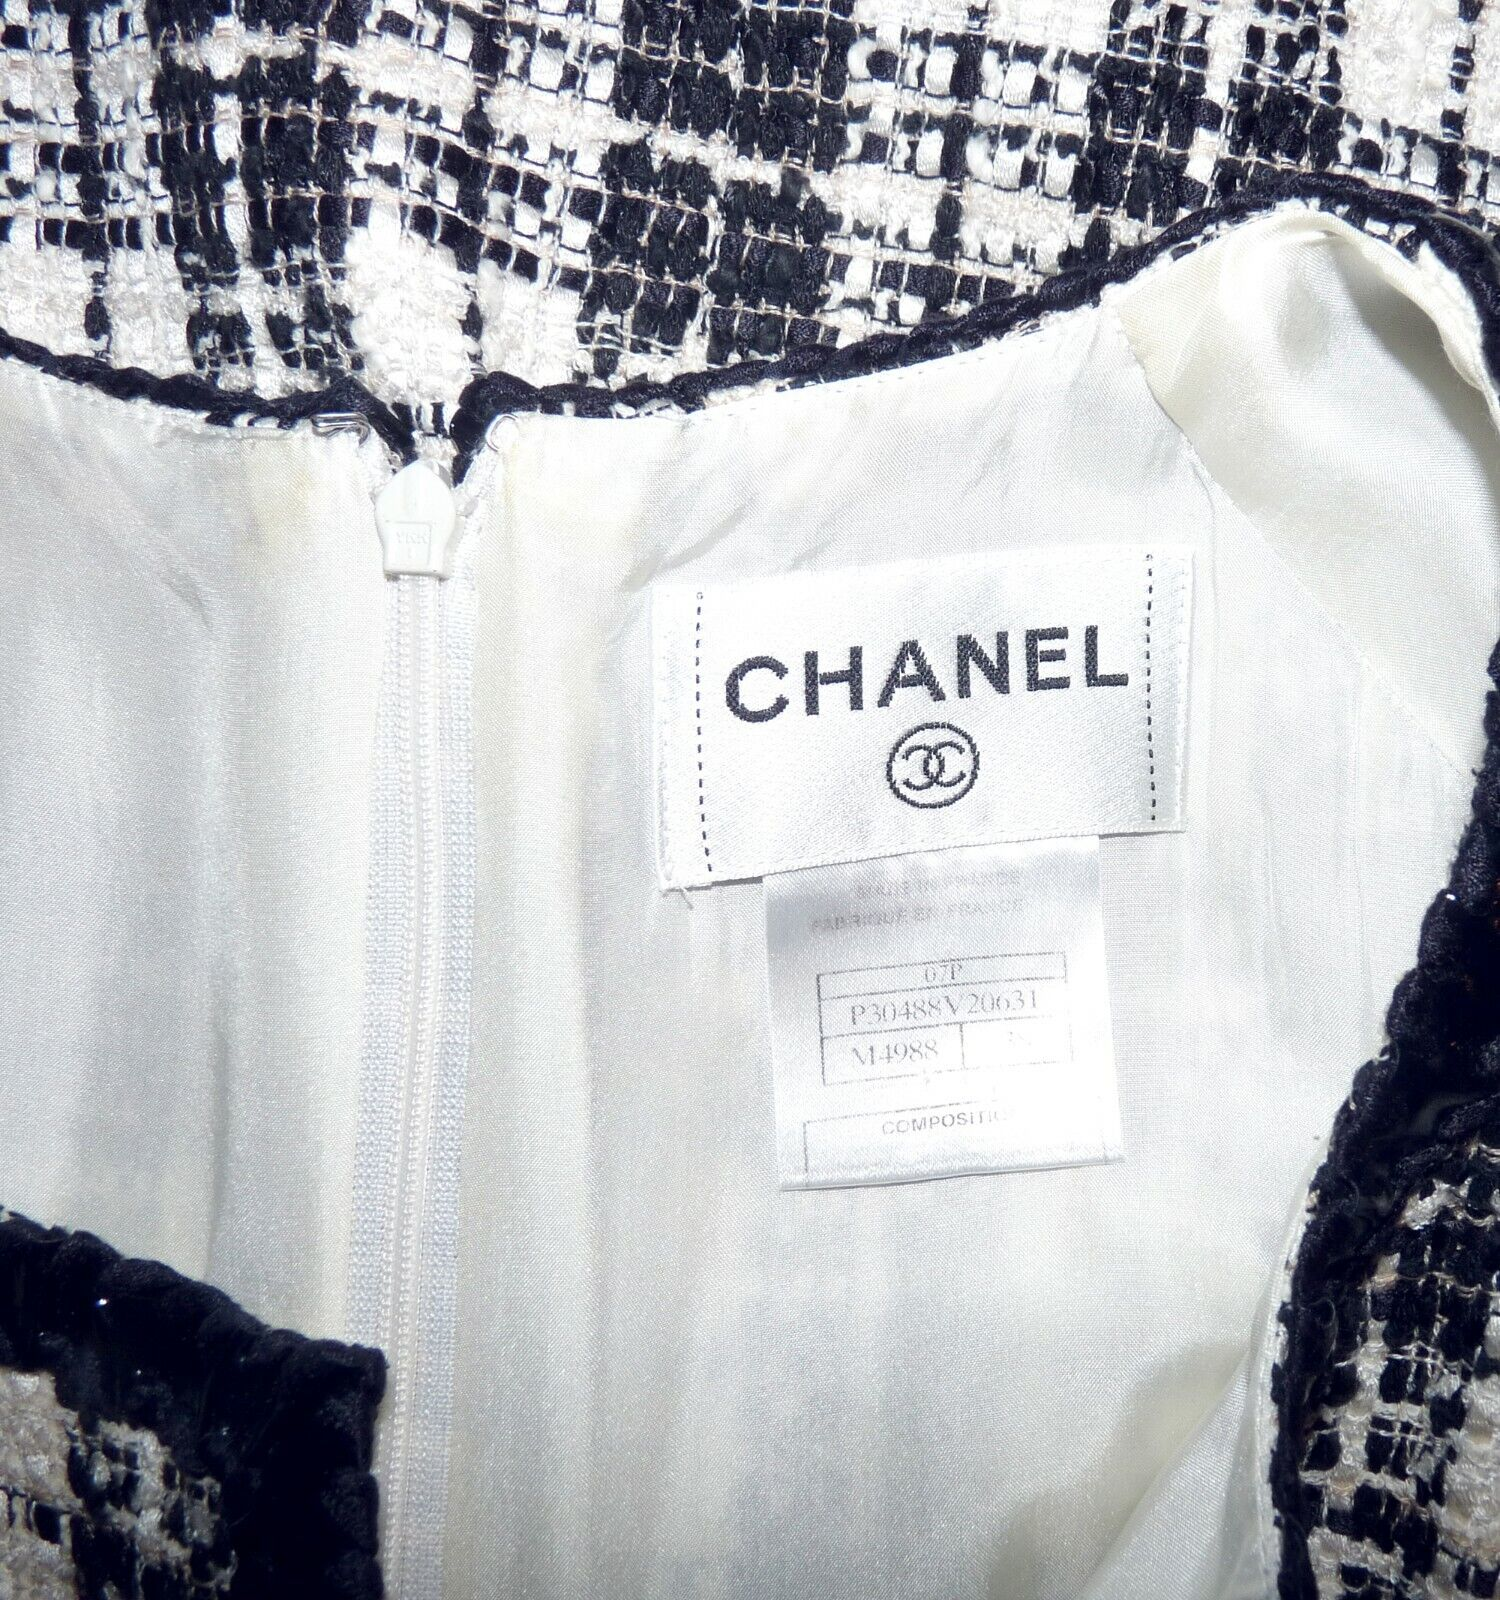 Chanel - robe tweed noire et ivoire broche camÉlia - chanel tweed dress